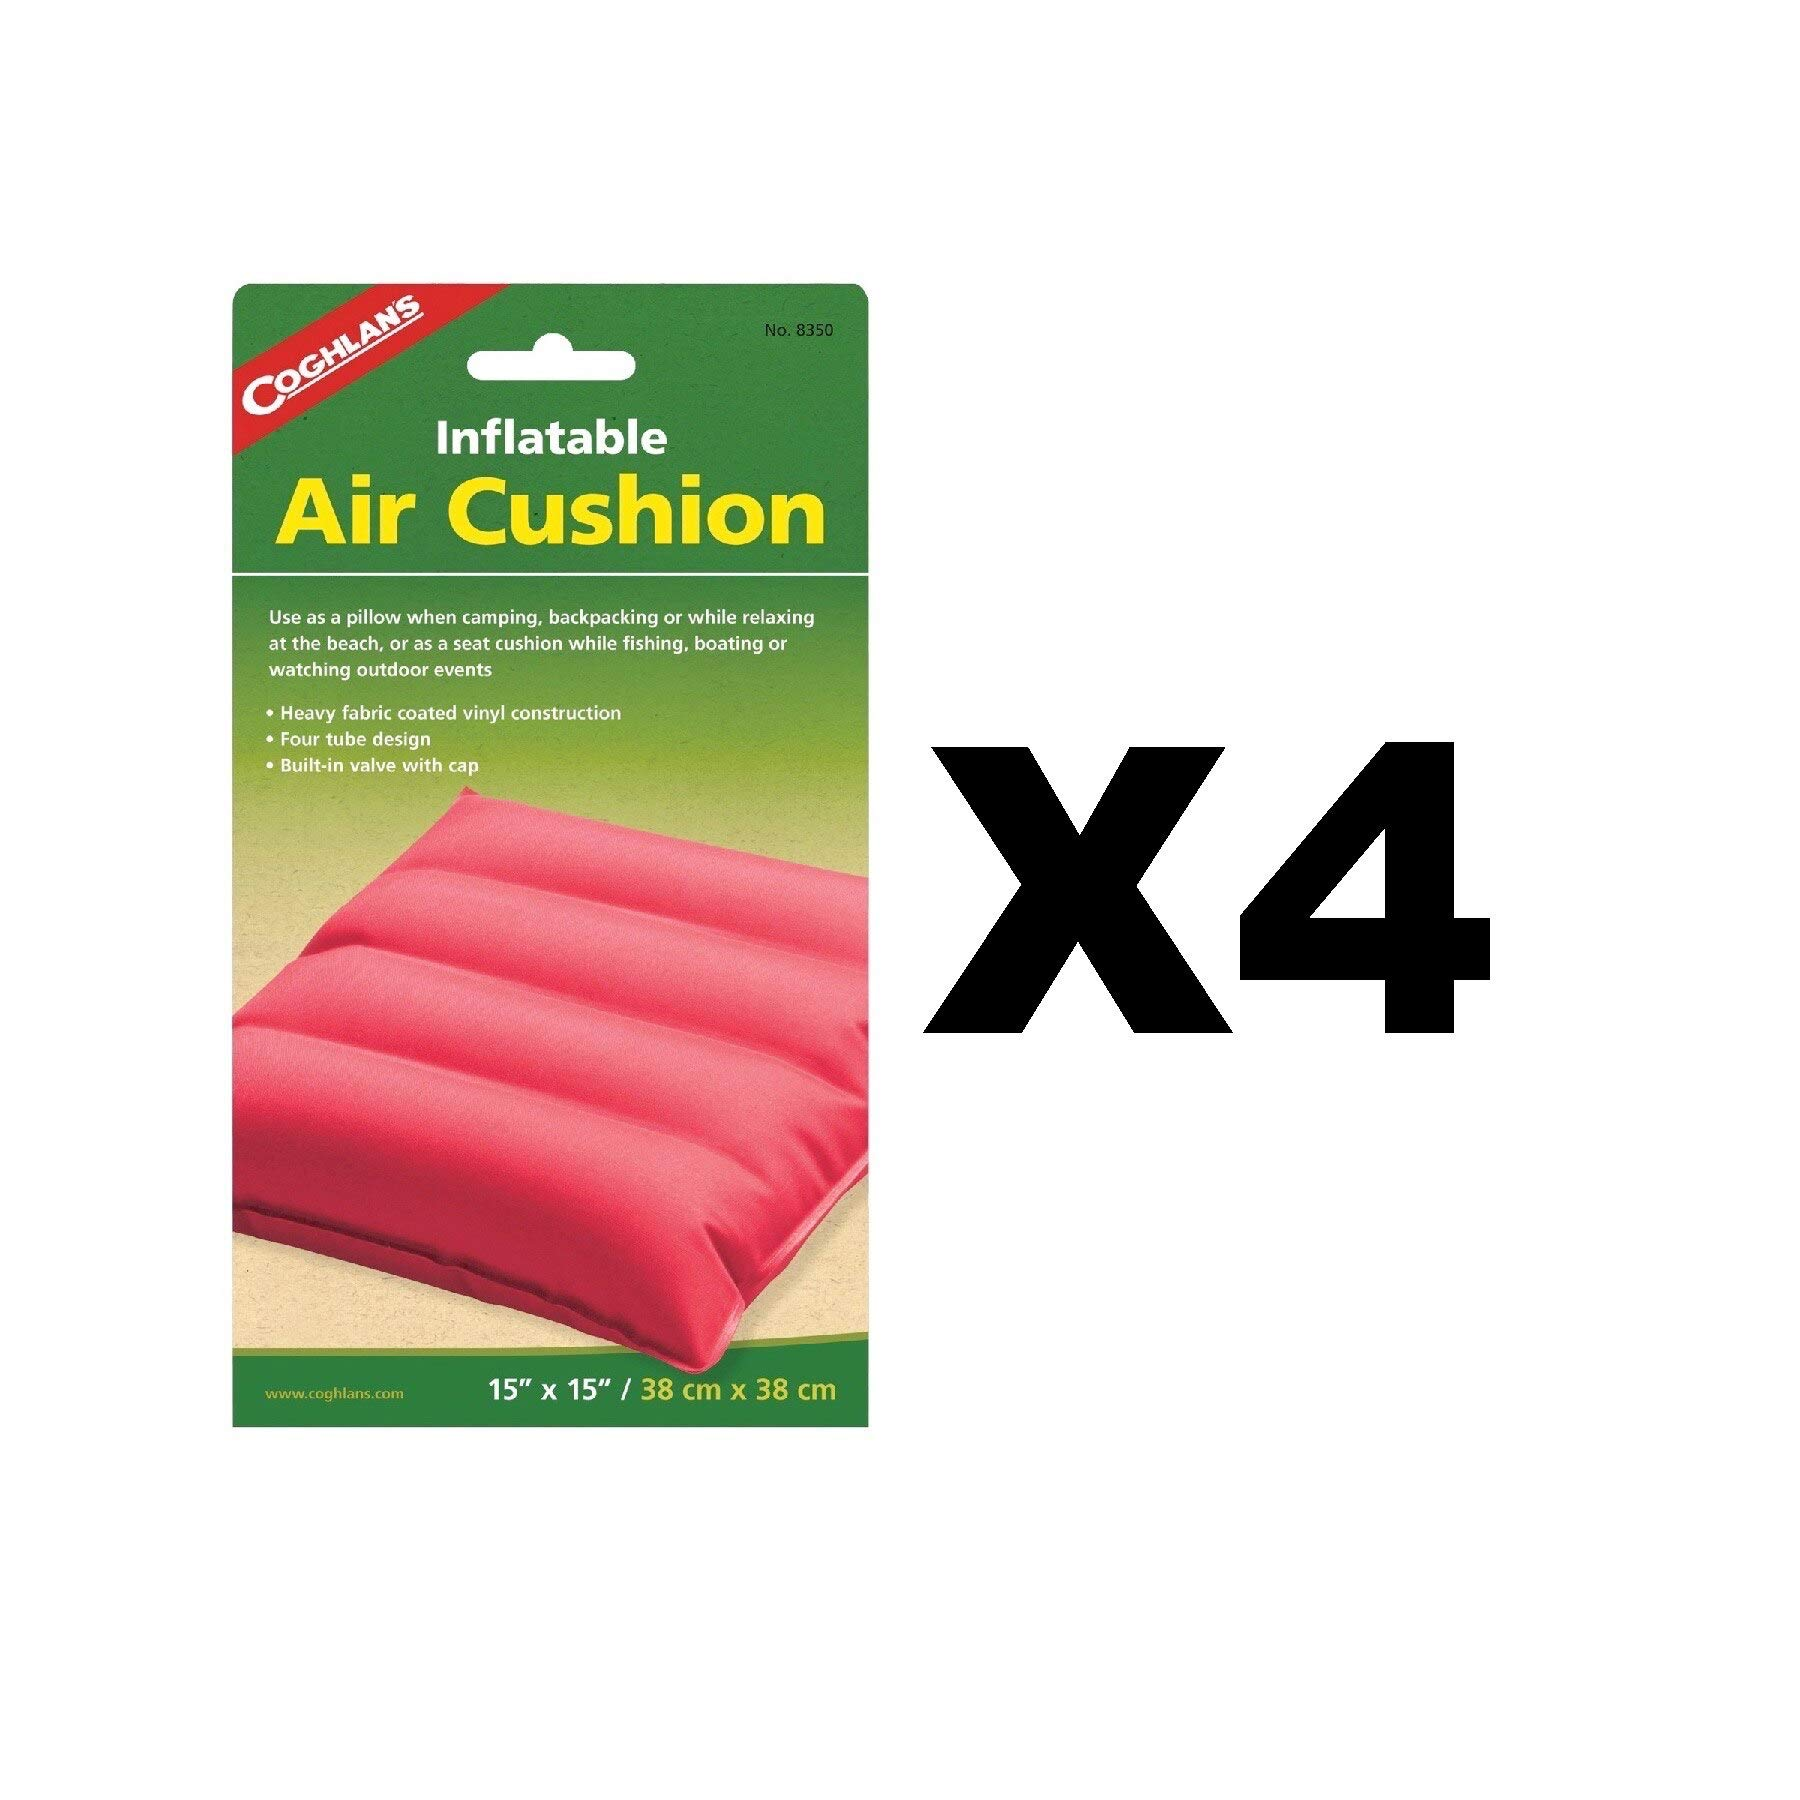 Coghlan's Inflatable Air Cushion Fabric Coated Vinyl Pad Assorted Colors(4-Pack) by Coghlan's